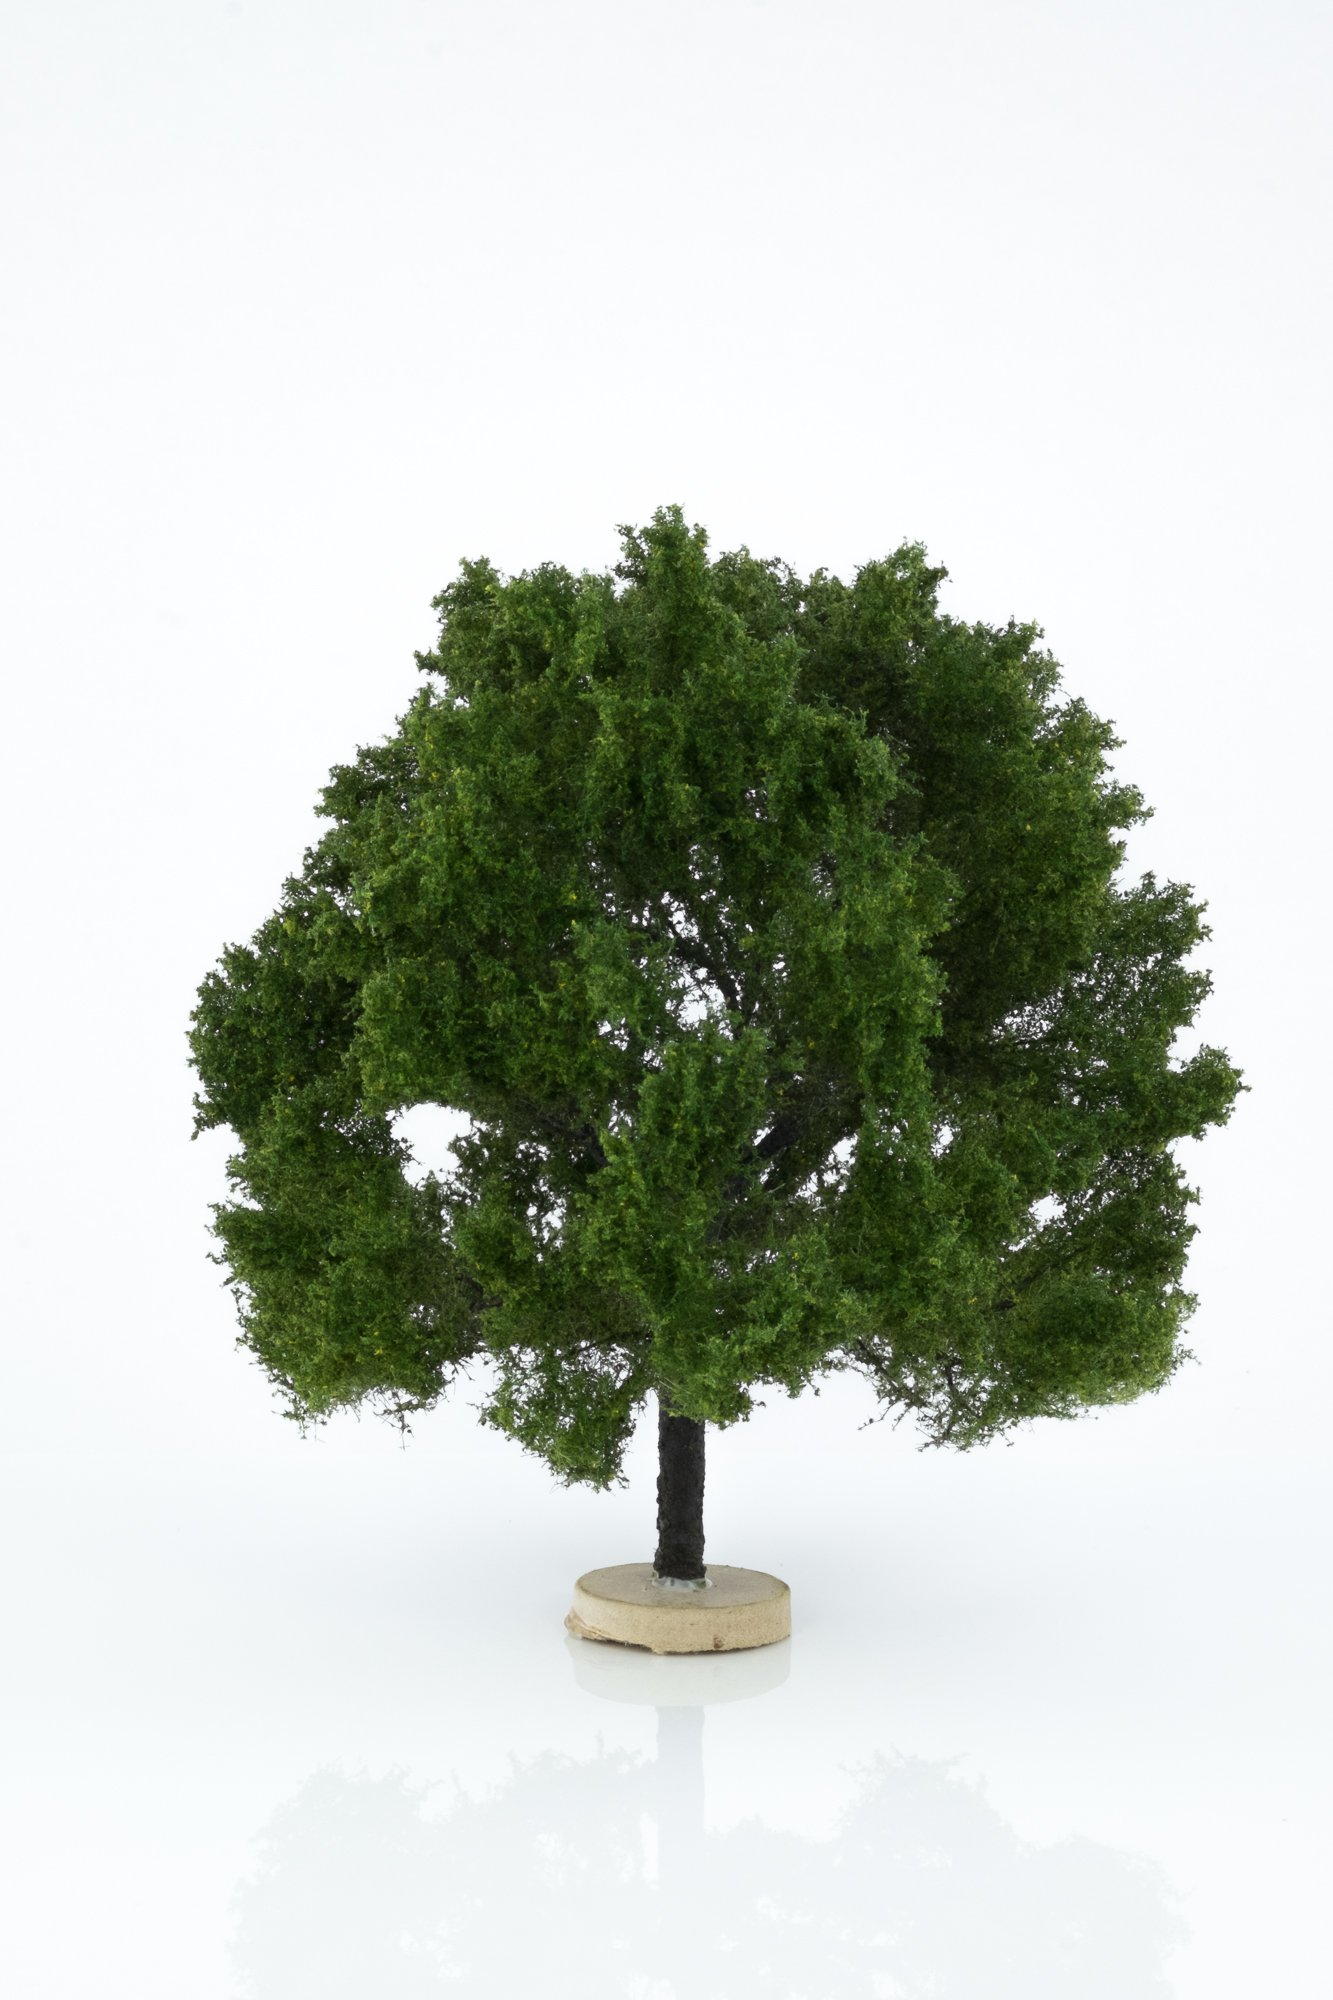 Hand-made, green, oak tree model. Size between 14 and 17 cm. Made from high quality model supplies by Primo Models.